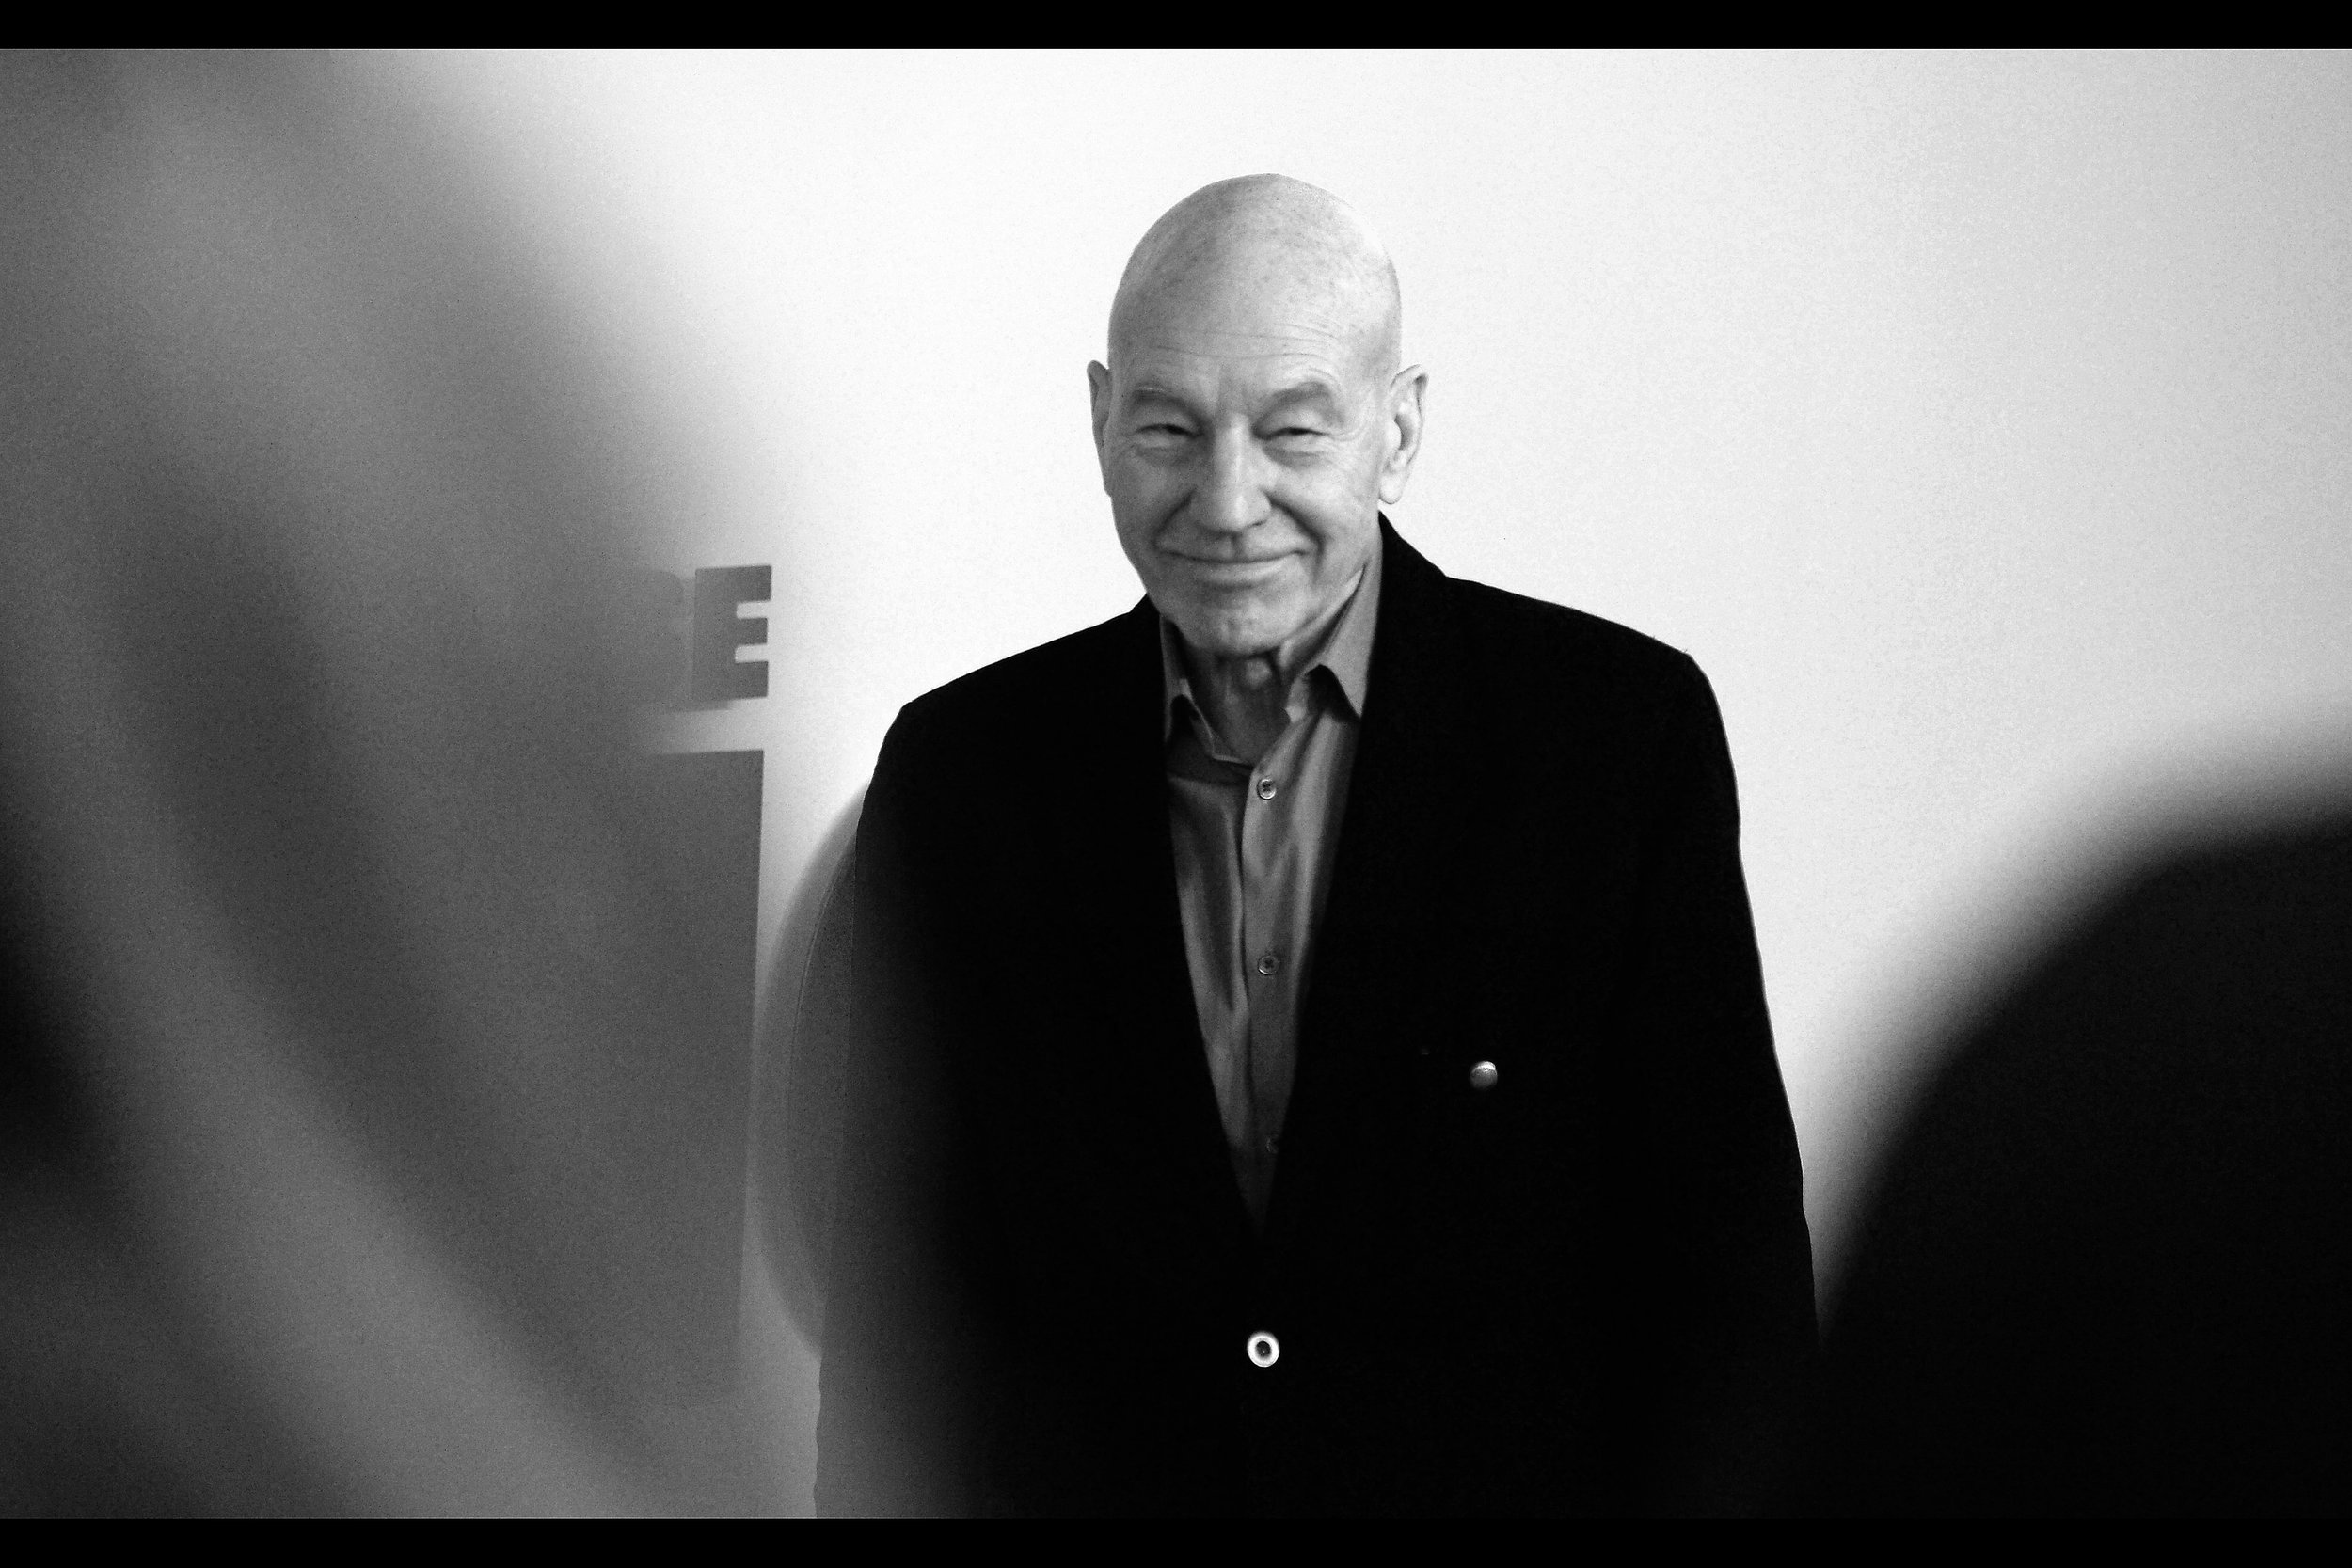 It's Sir Patrick Stewart ! - he's in this movie, and as long as this photo is the only thing required as evidence, he and I are great friends.